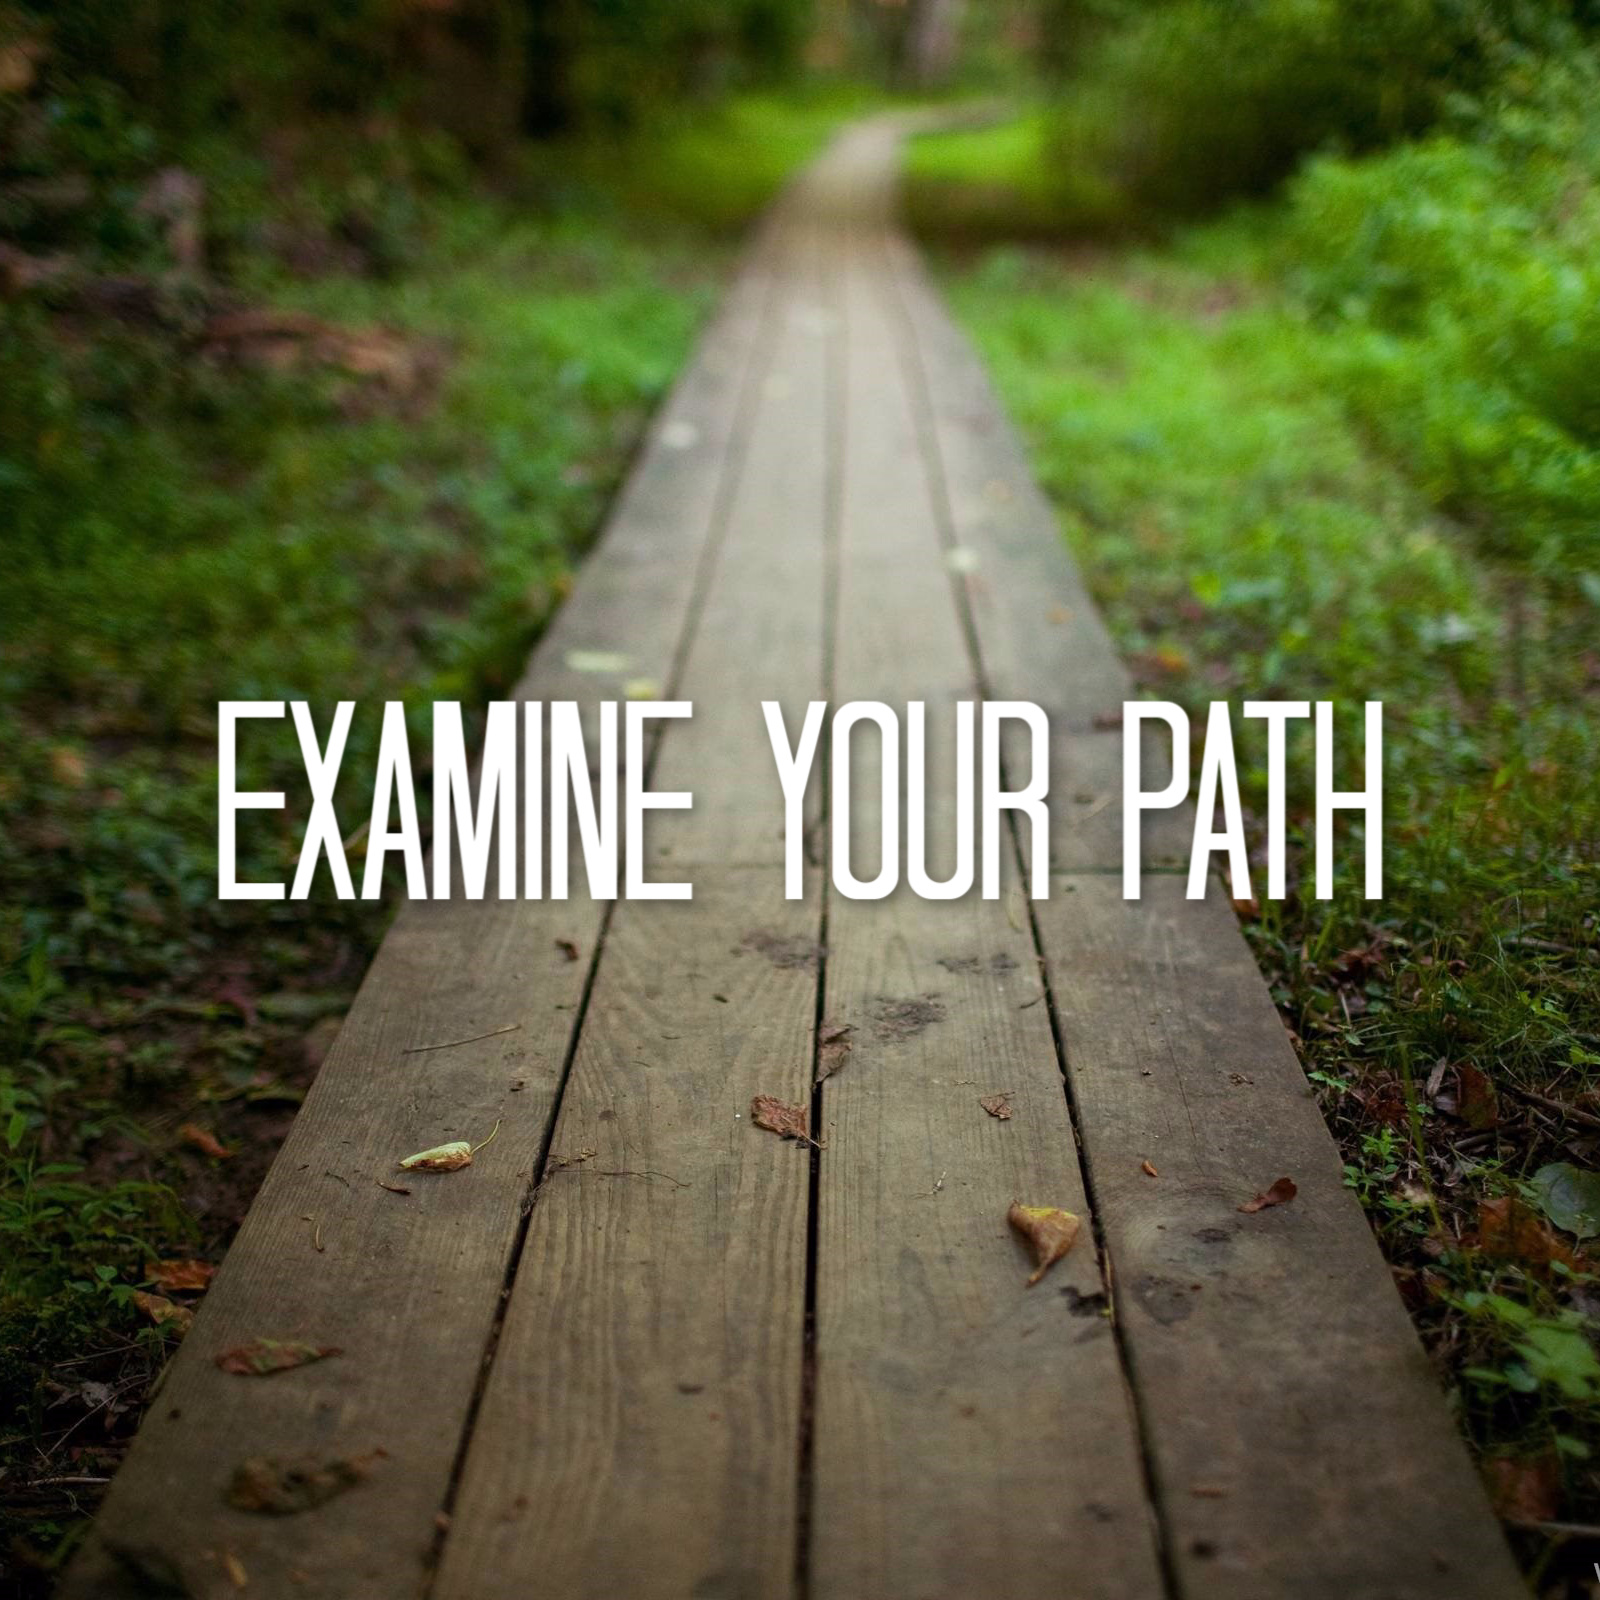 Examine Your Path